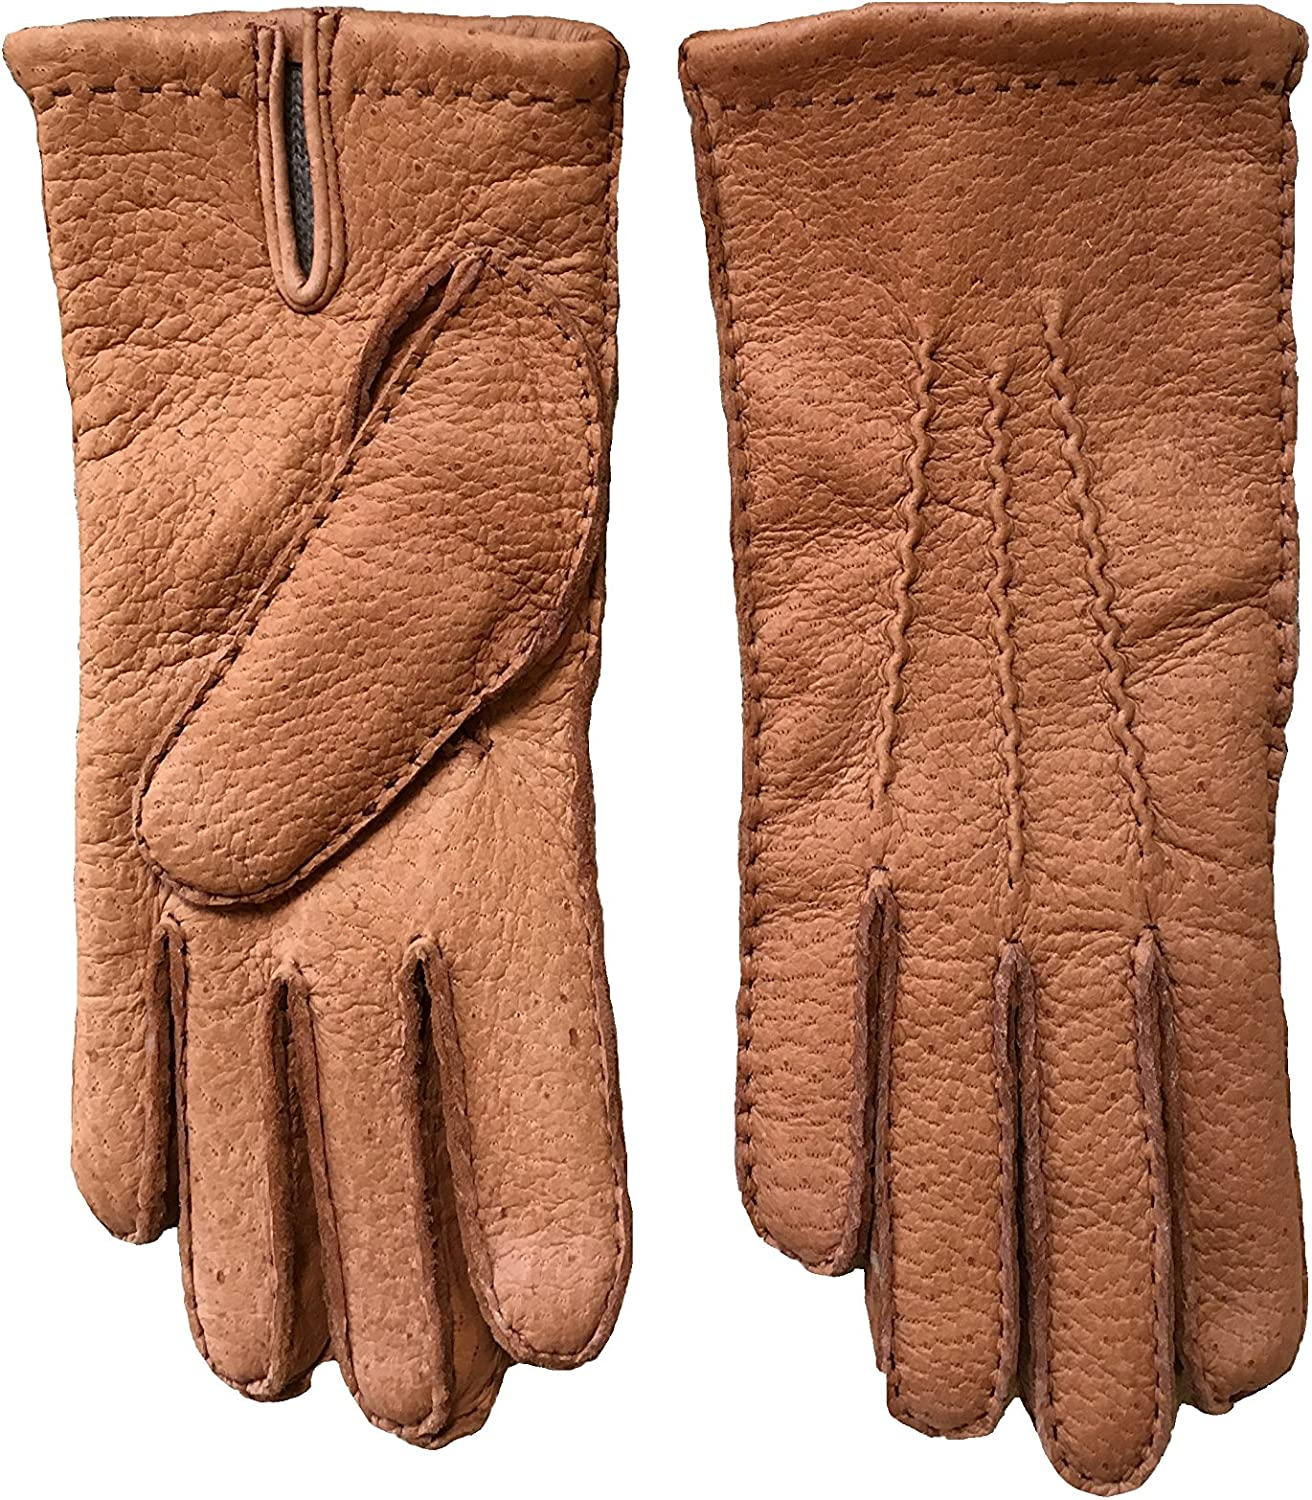 Men's Peccary Leather Max 69% OFF Gloves Lined Fresno Mall Cork Cashmere